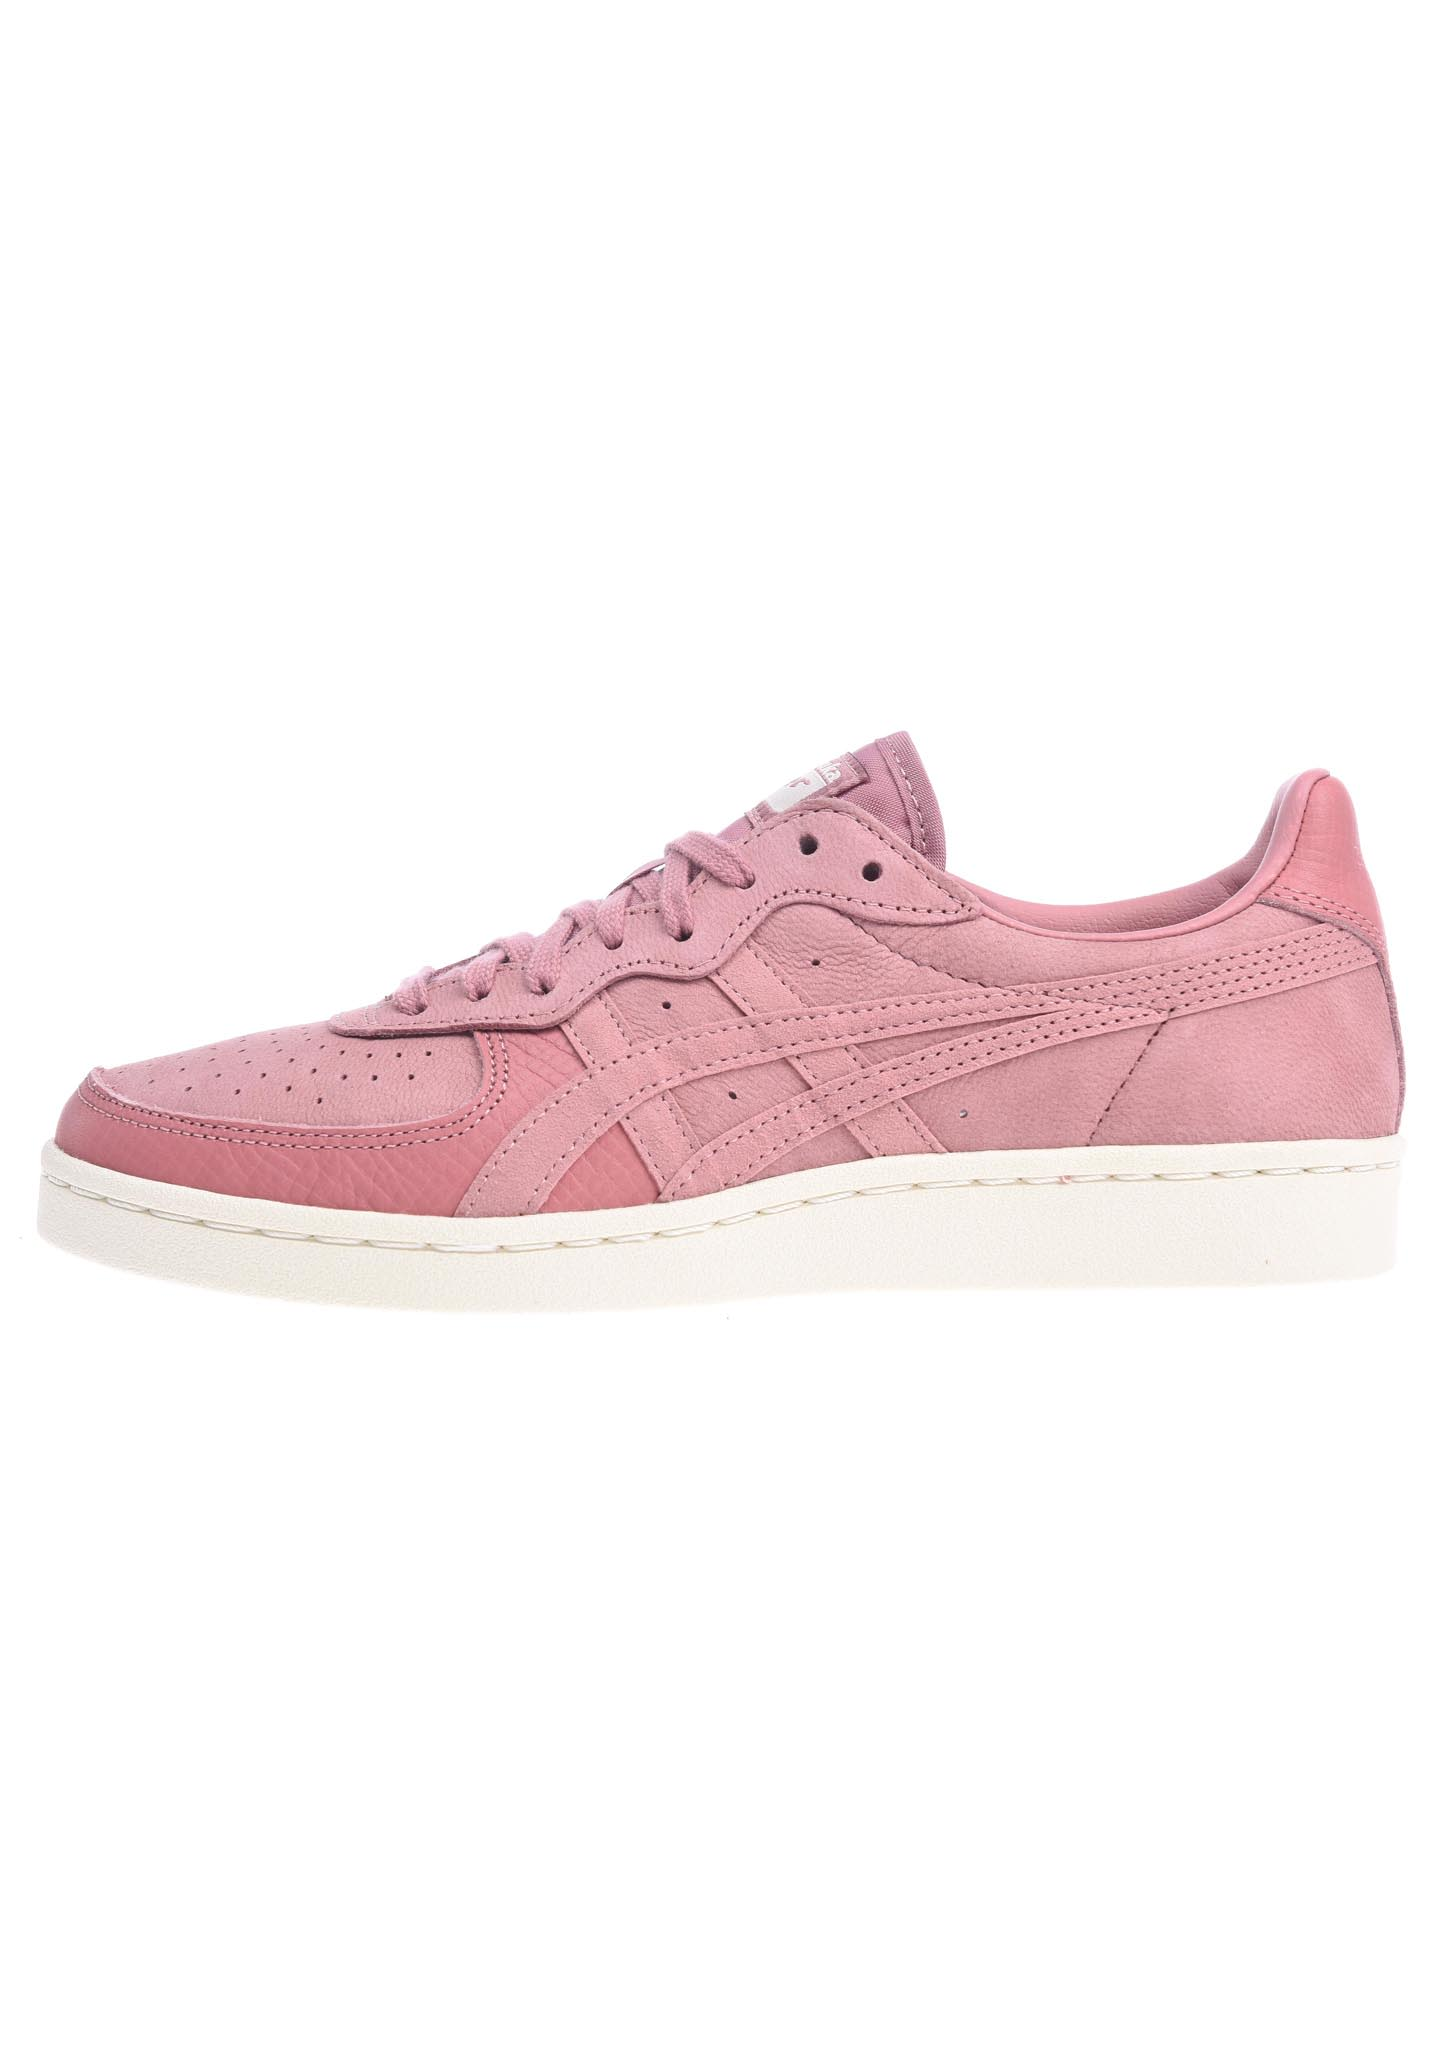 the latest 025b2 724d1 Onitsuka Tiger GSM - Sneakers for Women - Pink